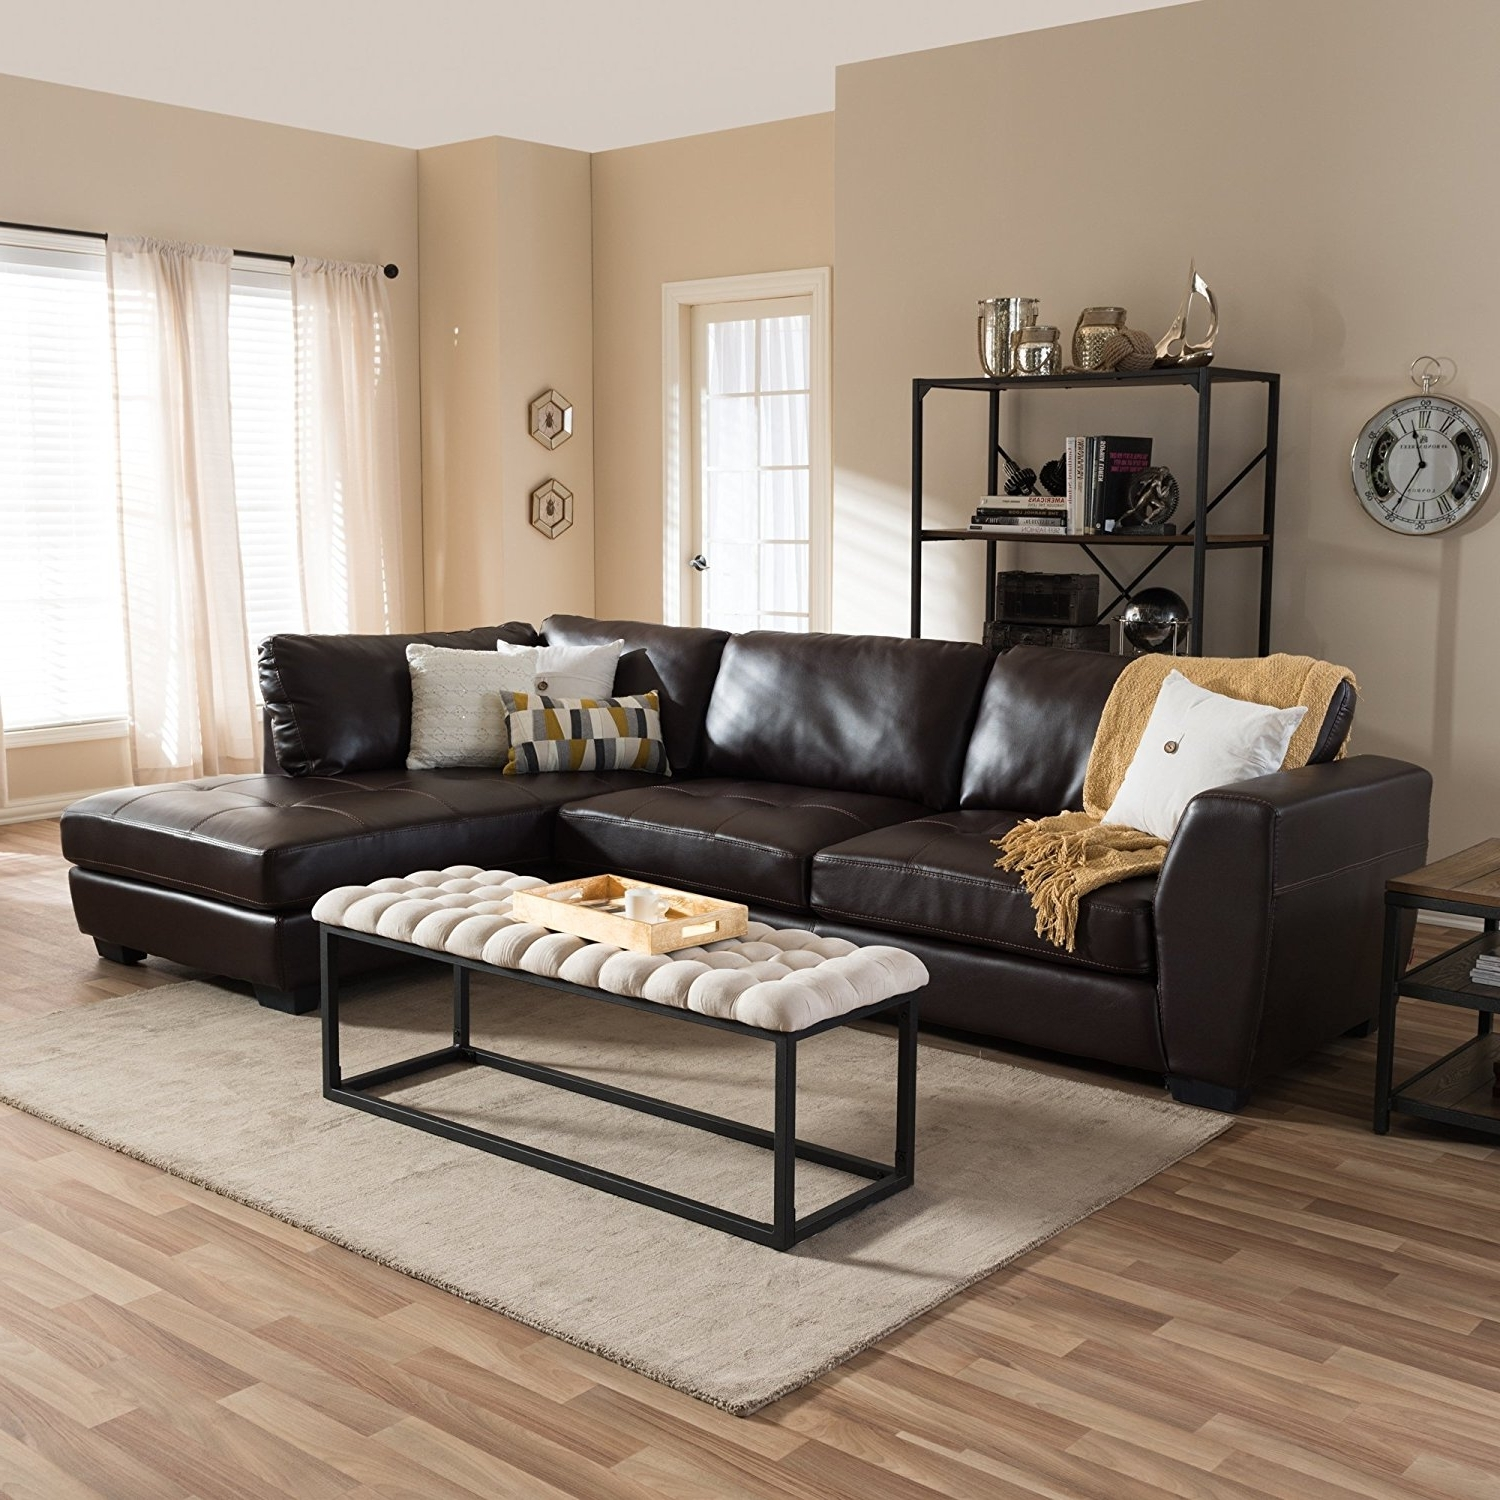 Widely Used Sectional Couches With Chaise Pertaining To Amazon: Baxton Studio Orland Bonded Leather Modern Sectional (View 9 of 15)